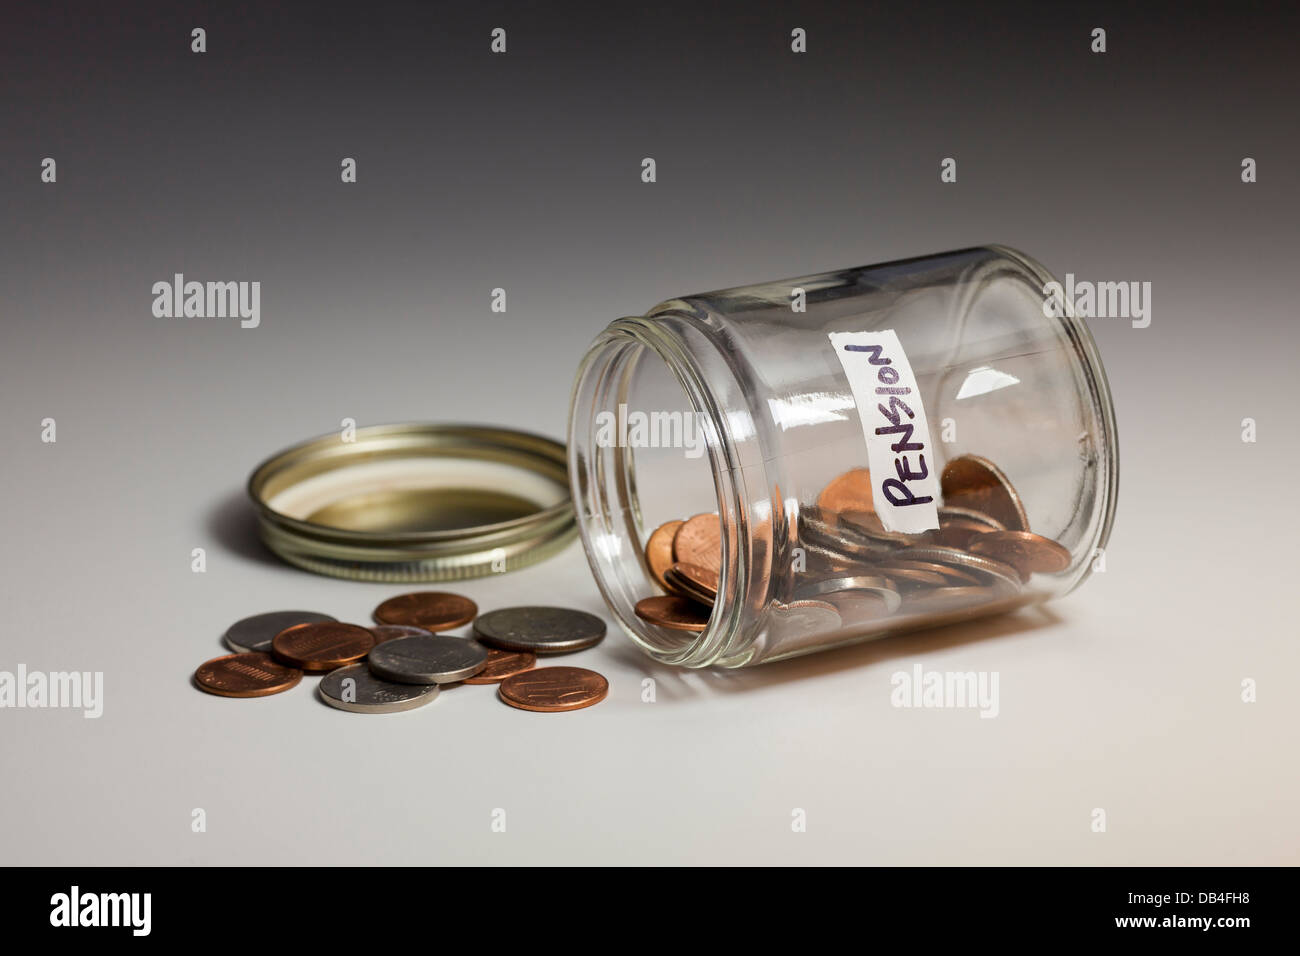 Spilled glass jar of coins saved for pension - USA - Stock Image